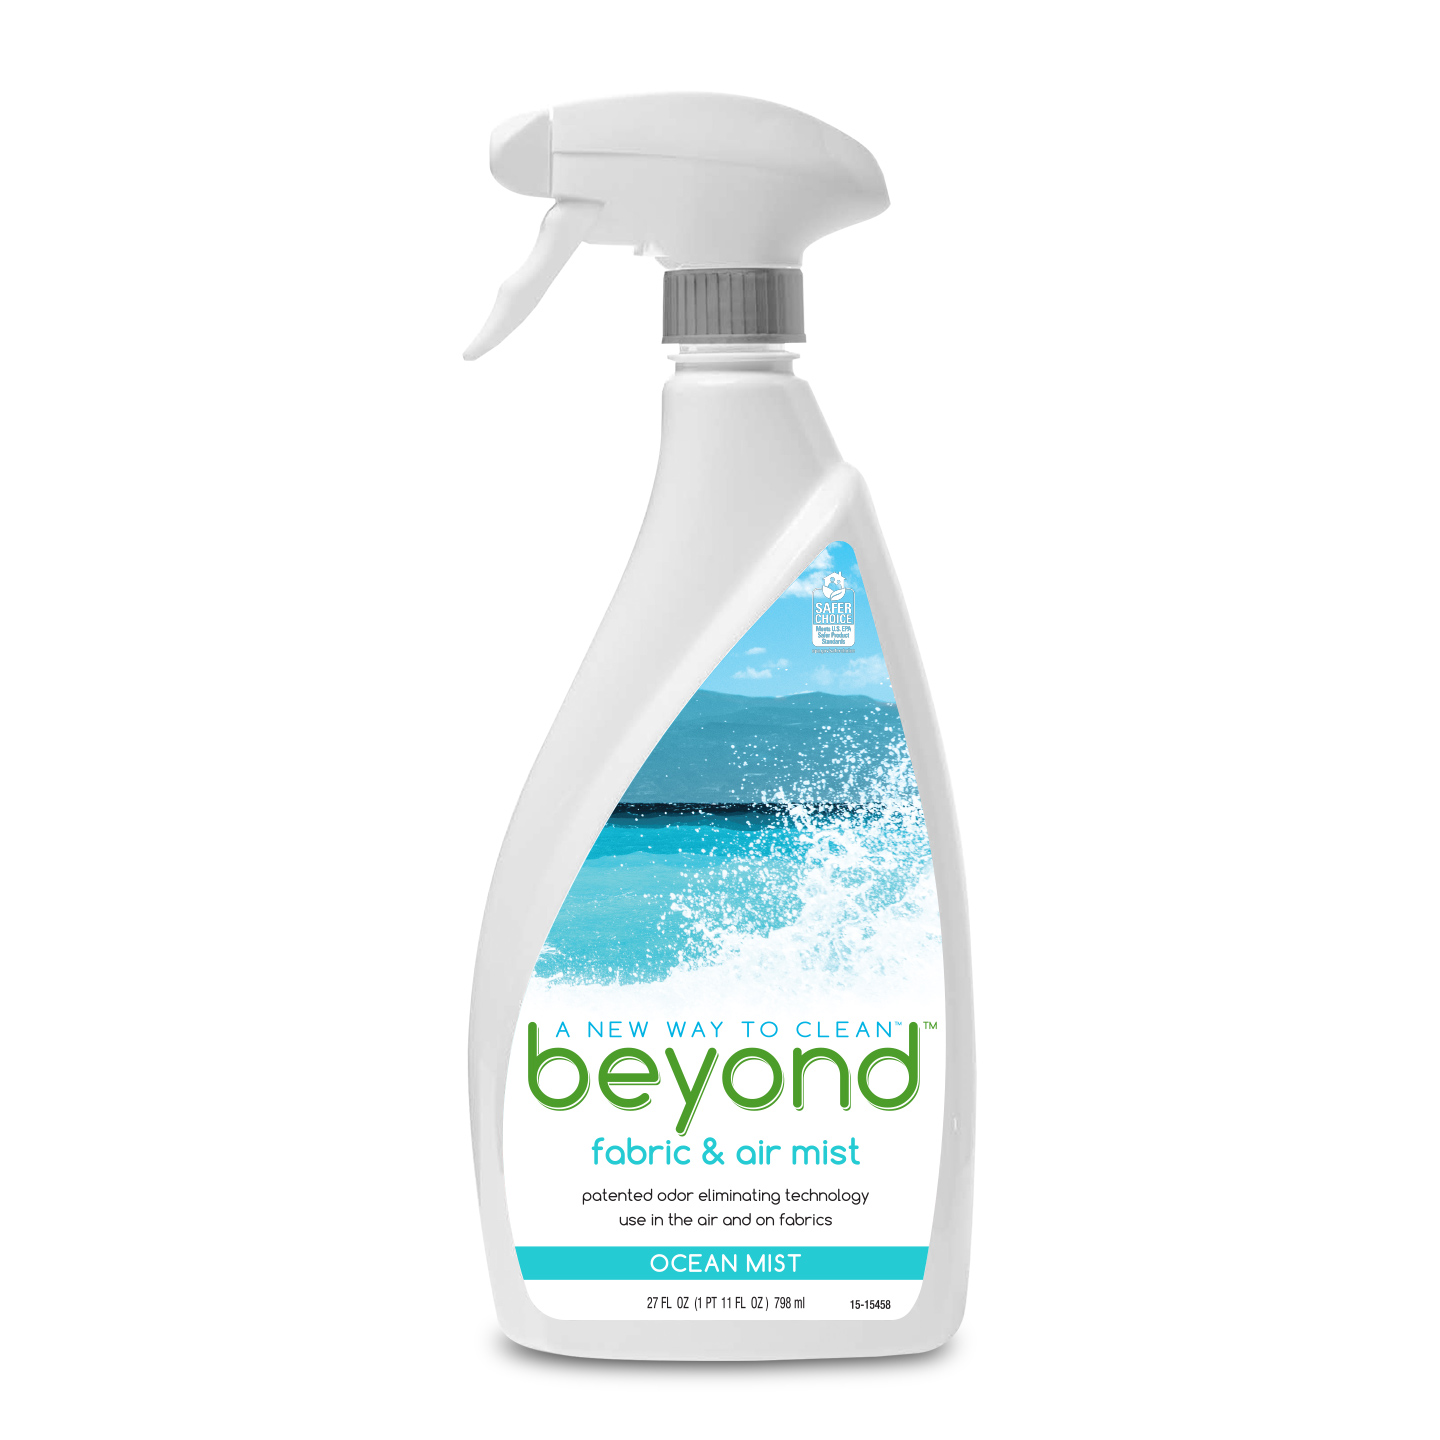 Beyond™ Fabric & Air Mist, Ocean Mist spray bottle